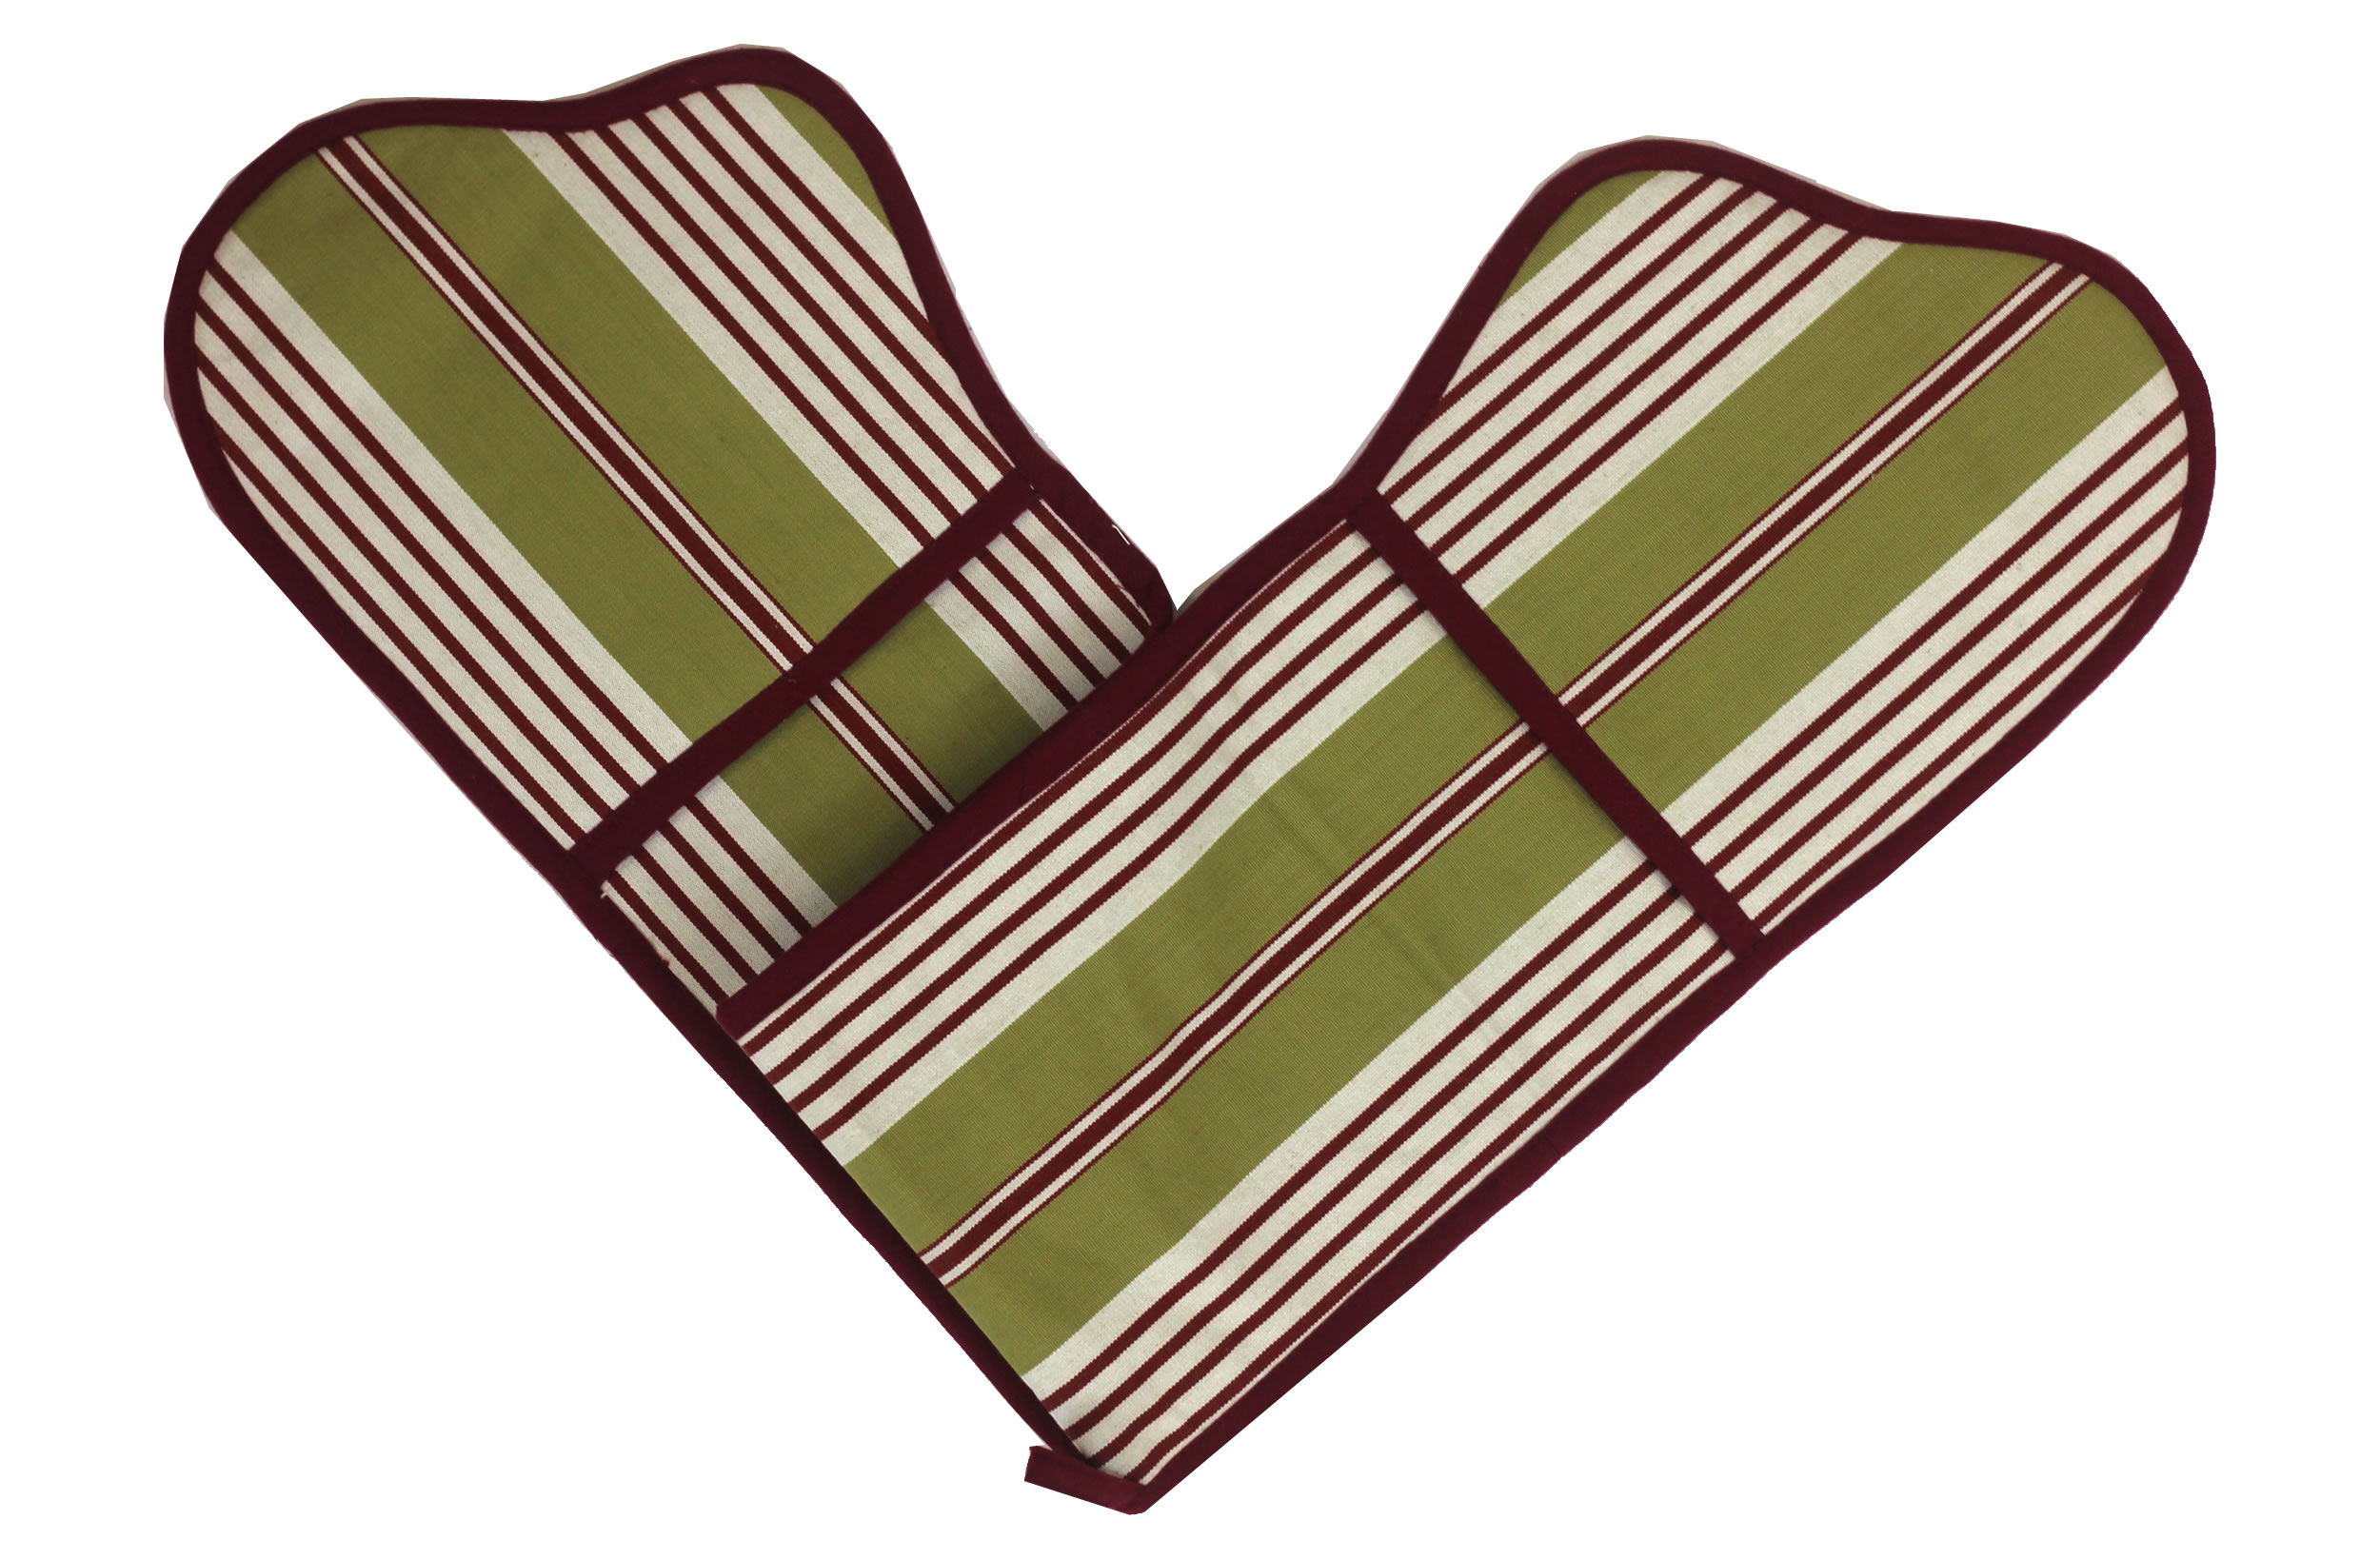 Olive Striped Oven Gloves | Double Oven Mitts Billiards Stripes